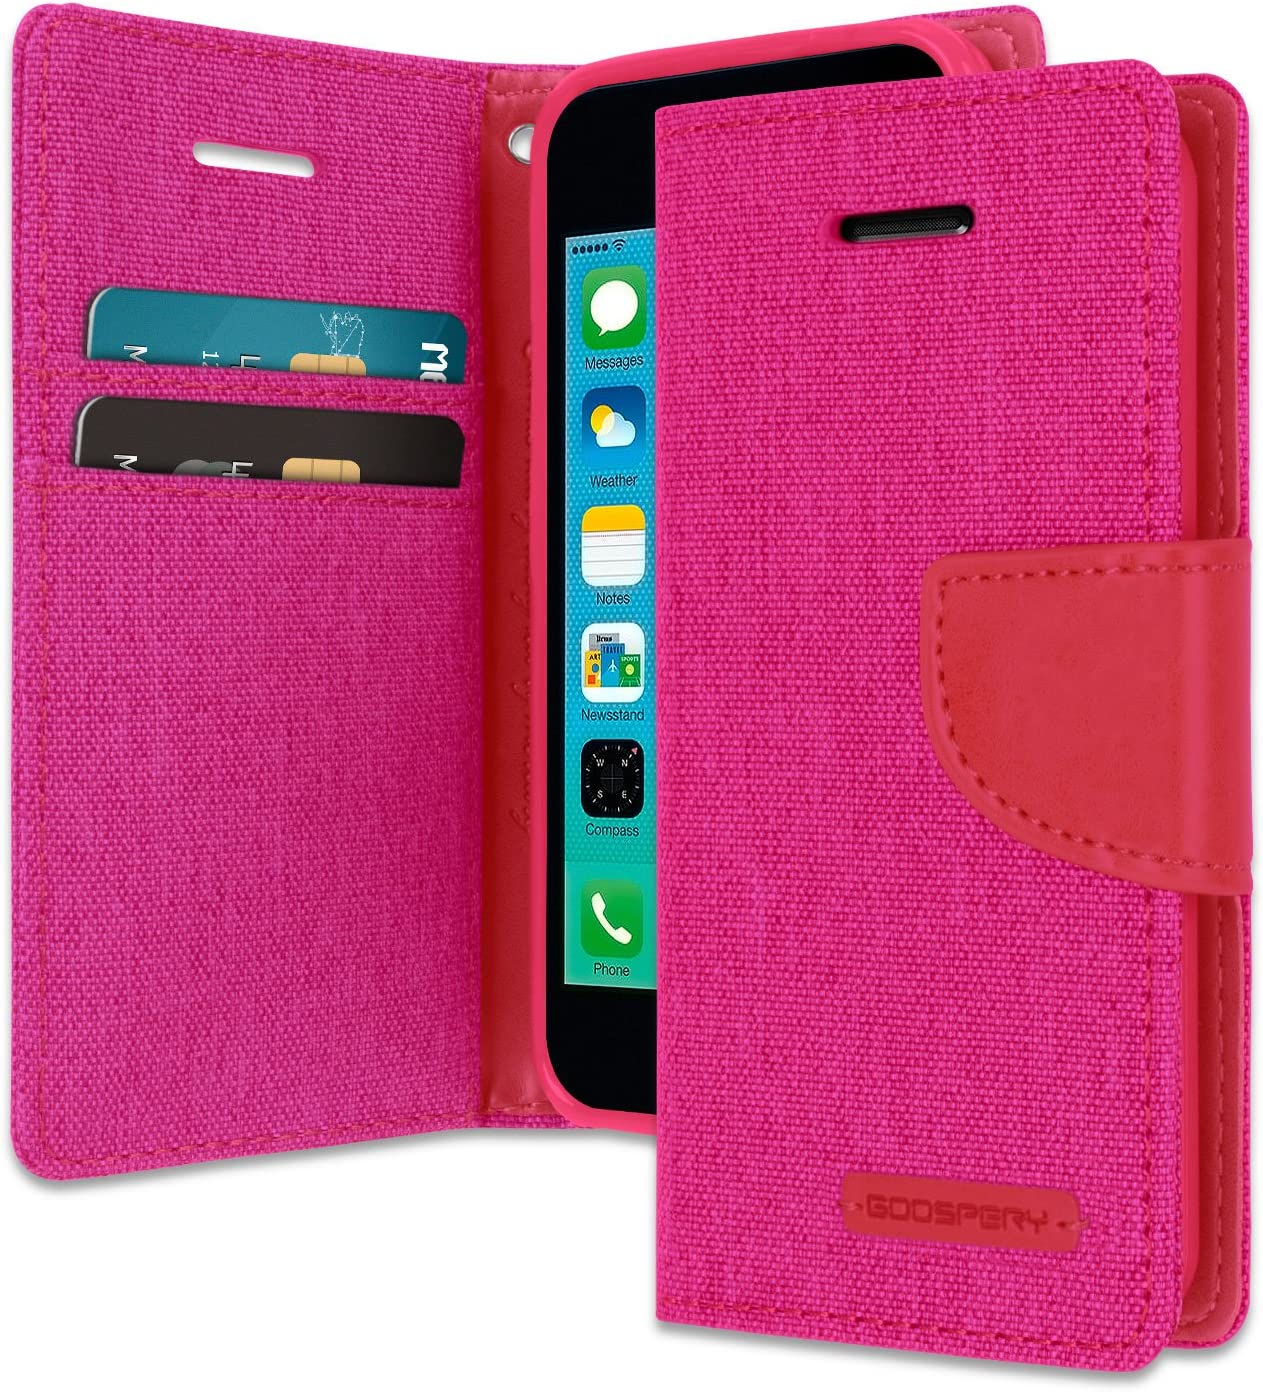 Goospery Canvas Wallet for Apple iPhone 5C Case (2013) Denim Stand Flip Cover with 6 Gifts (Pink) IP5C-CAN/GF-PNK